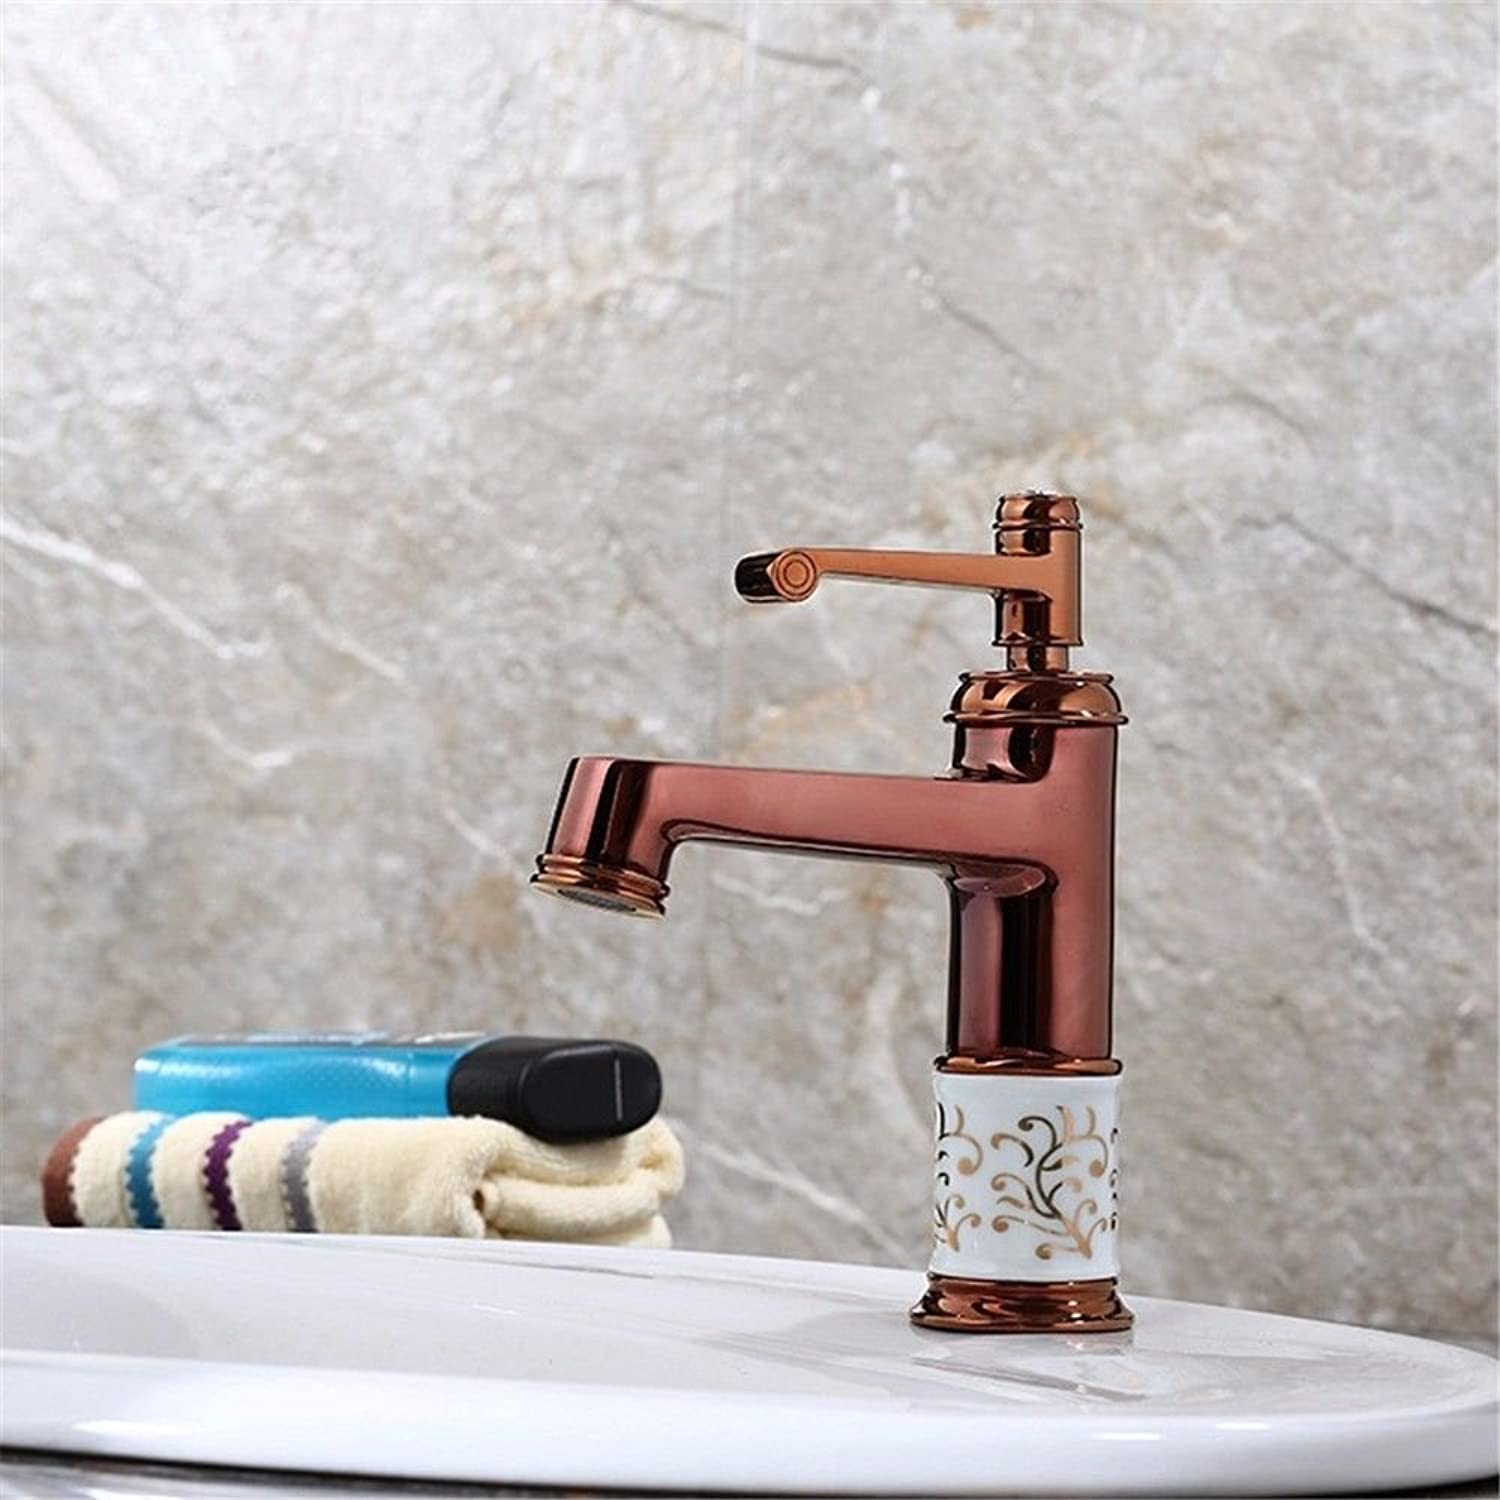 Commercial Single Lever Pull Down Kitchen Sink Faucet Brass Constructed Polished European All-Copper Hot and Cold pink gold Antique Waterfall Faucet Basin Bathroom Kitchen Hotel